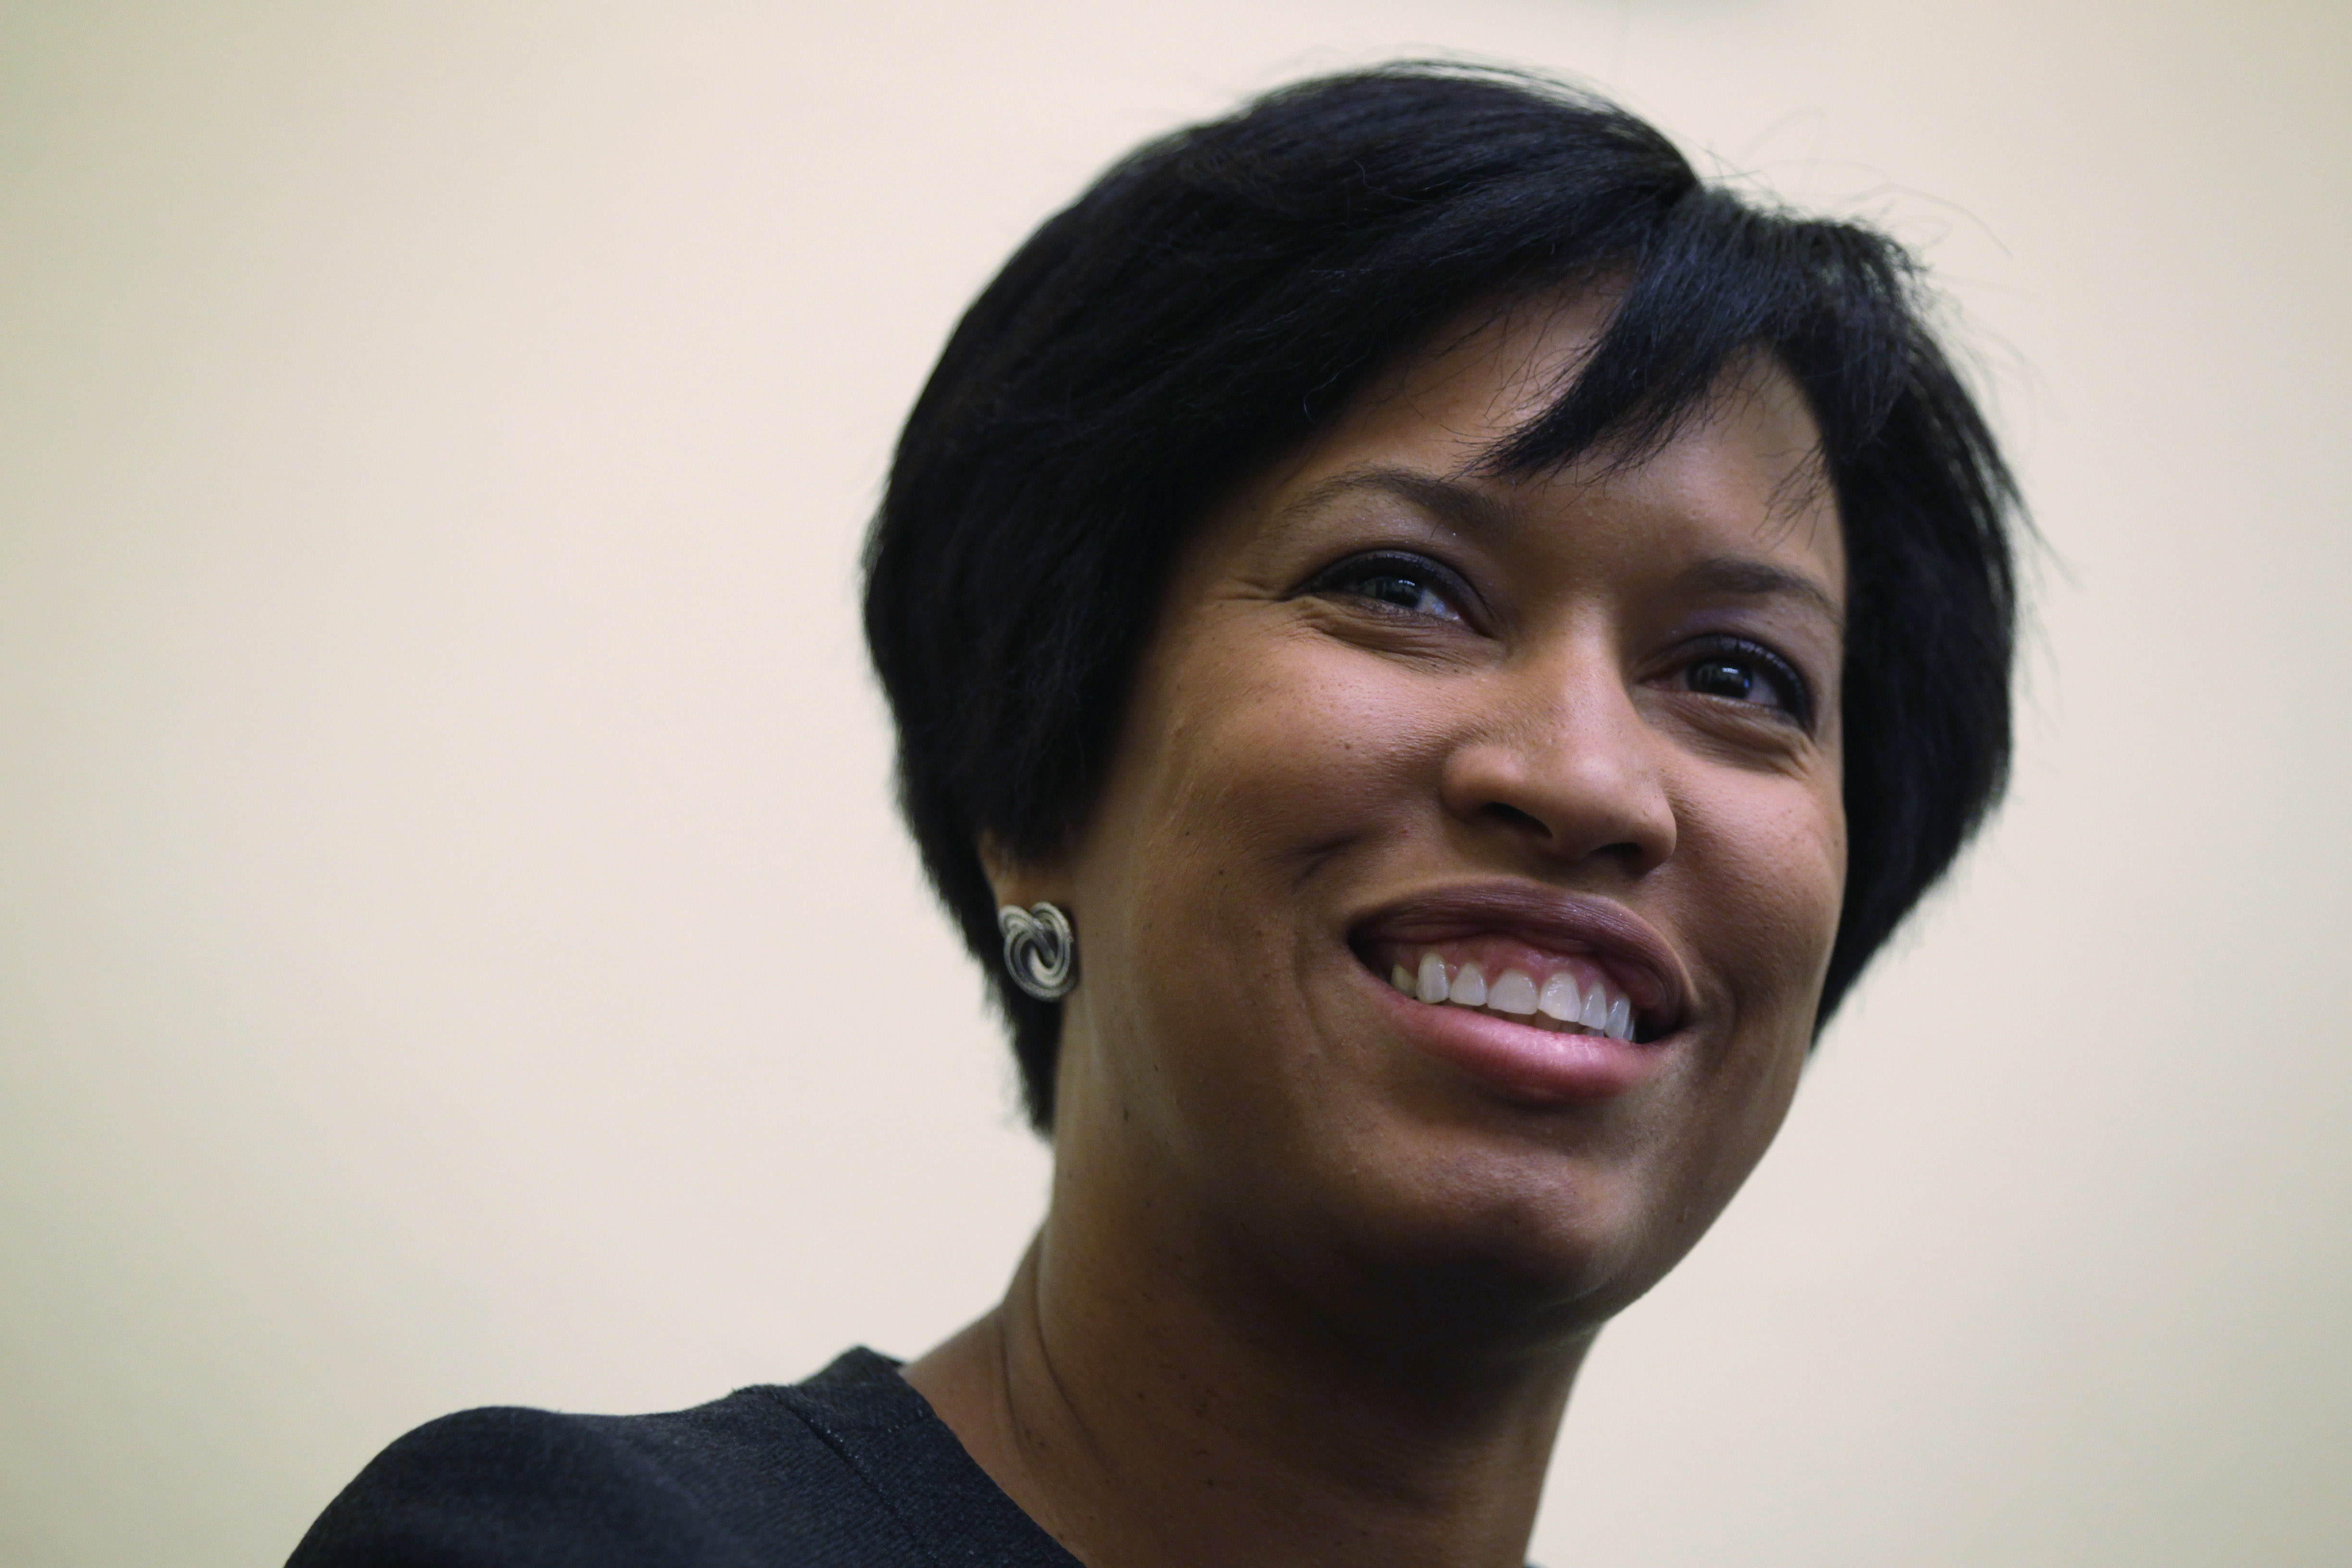 D.C. Mayor Muriel Bowser will announce Tuesday a final deal with D.C. United to build a stadium on Buzzard Point.